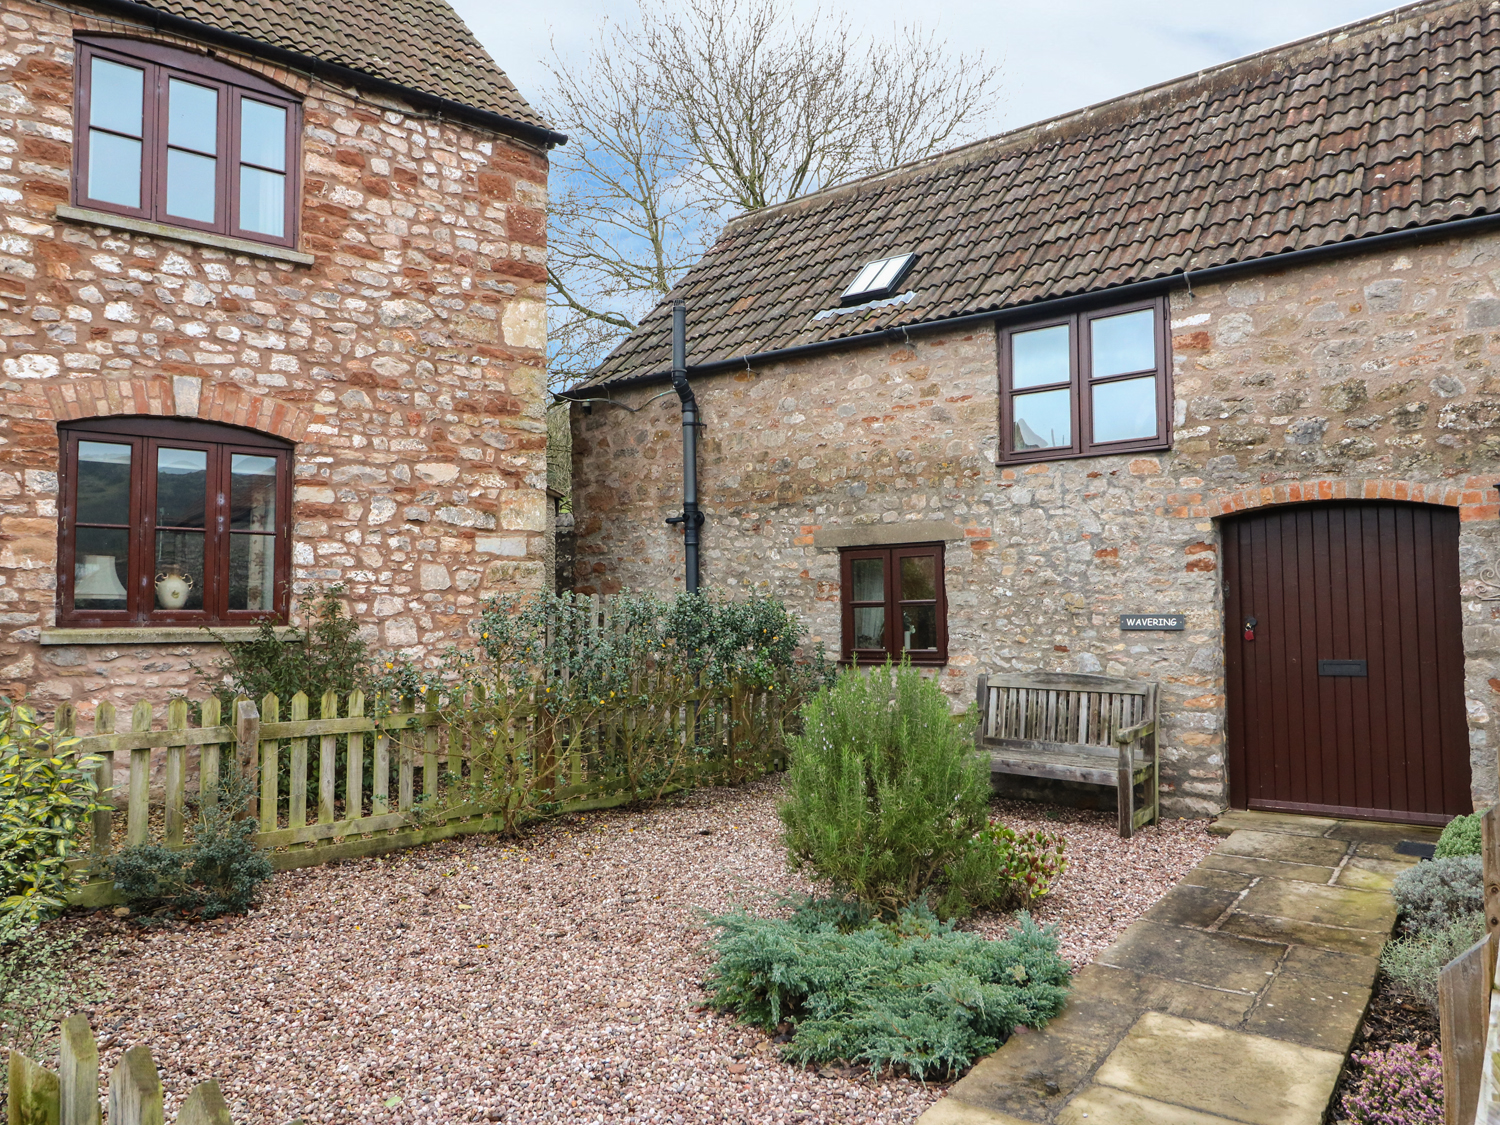 2 bedroom Cottage for rent in Axbridge